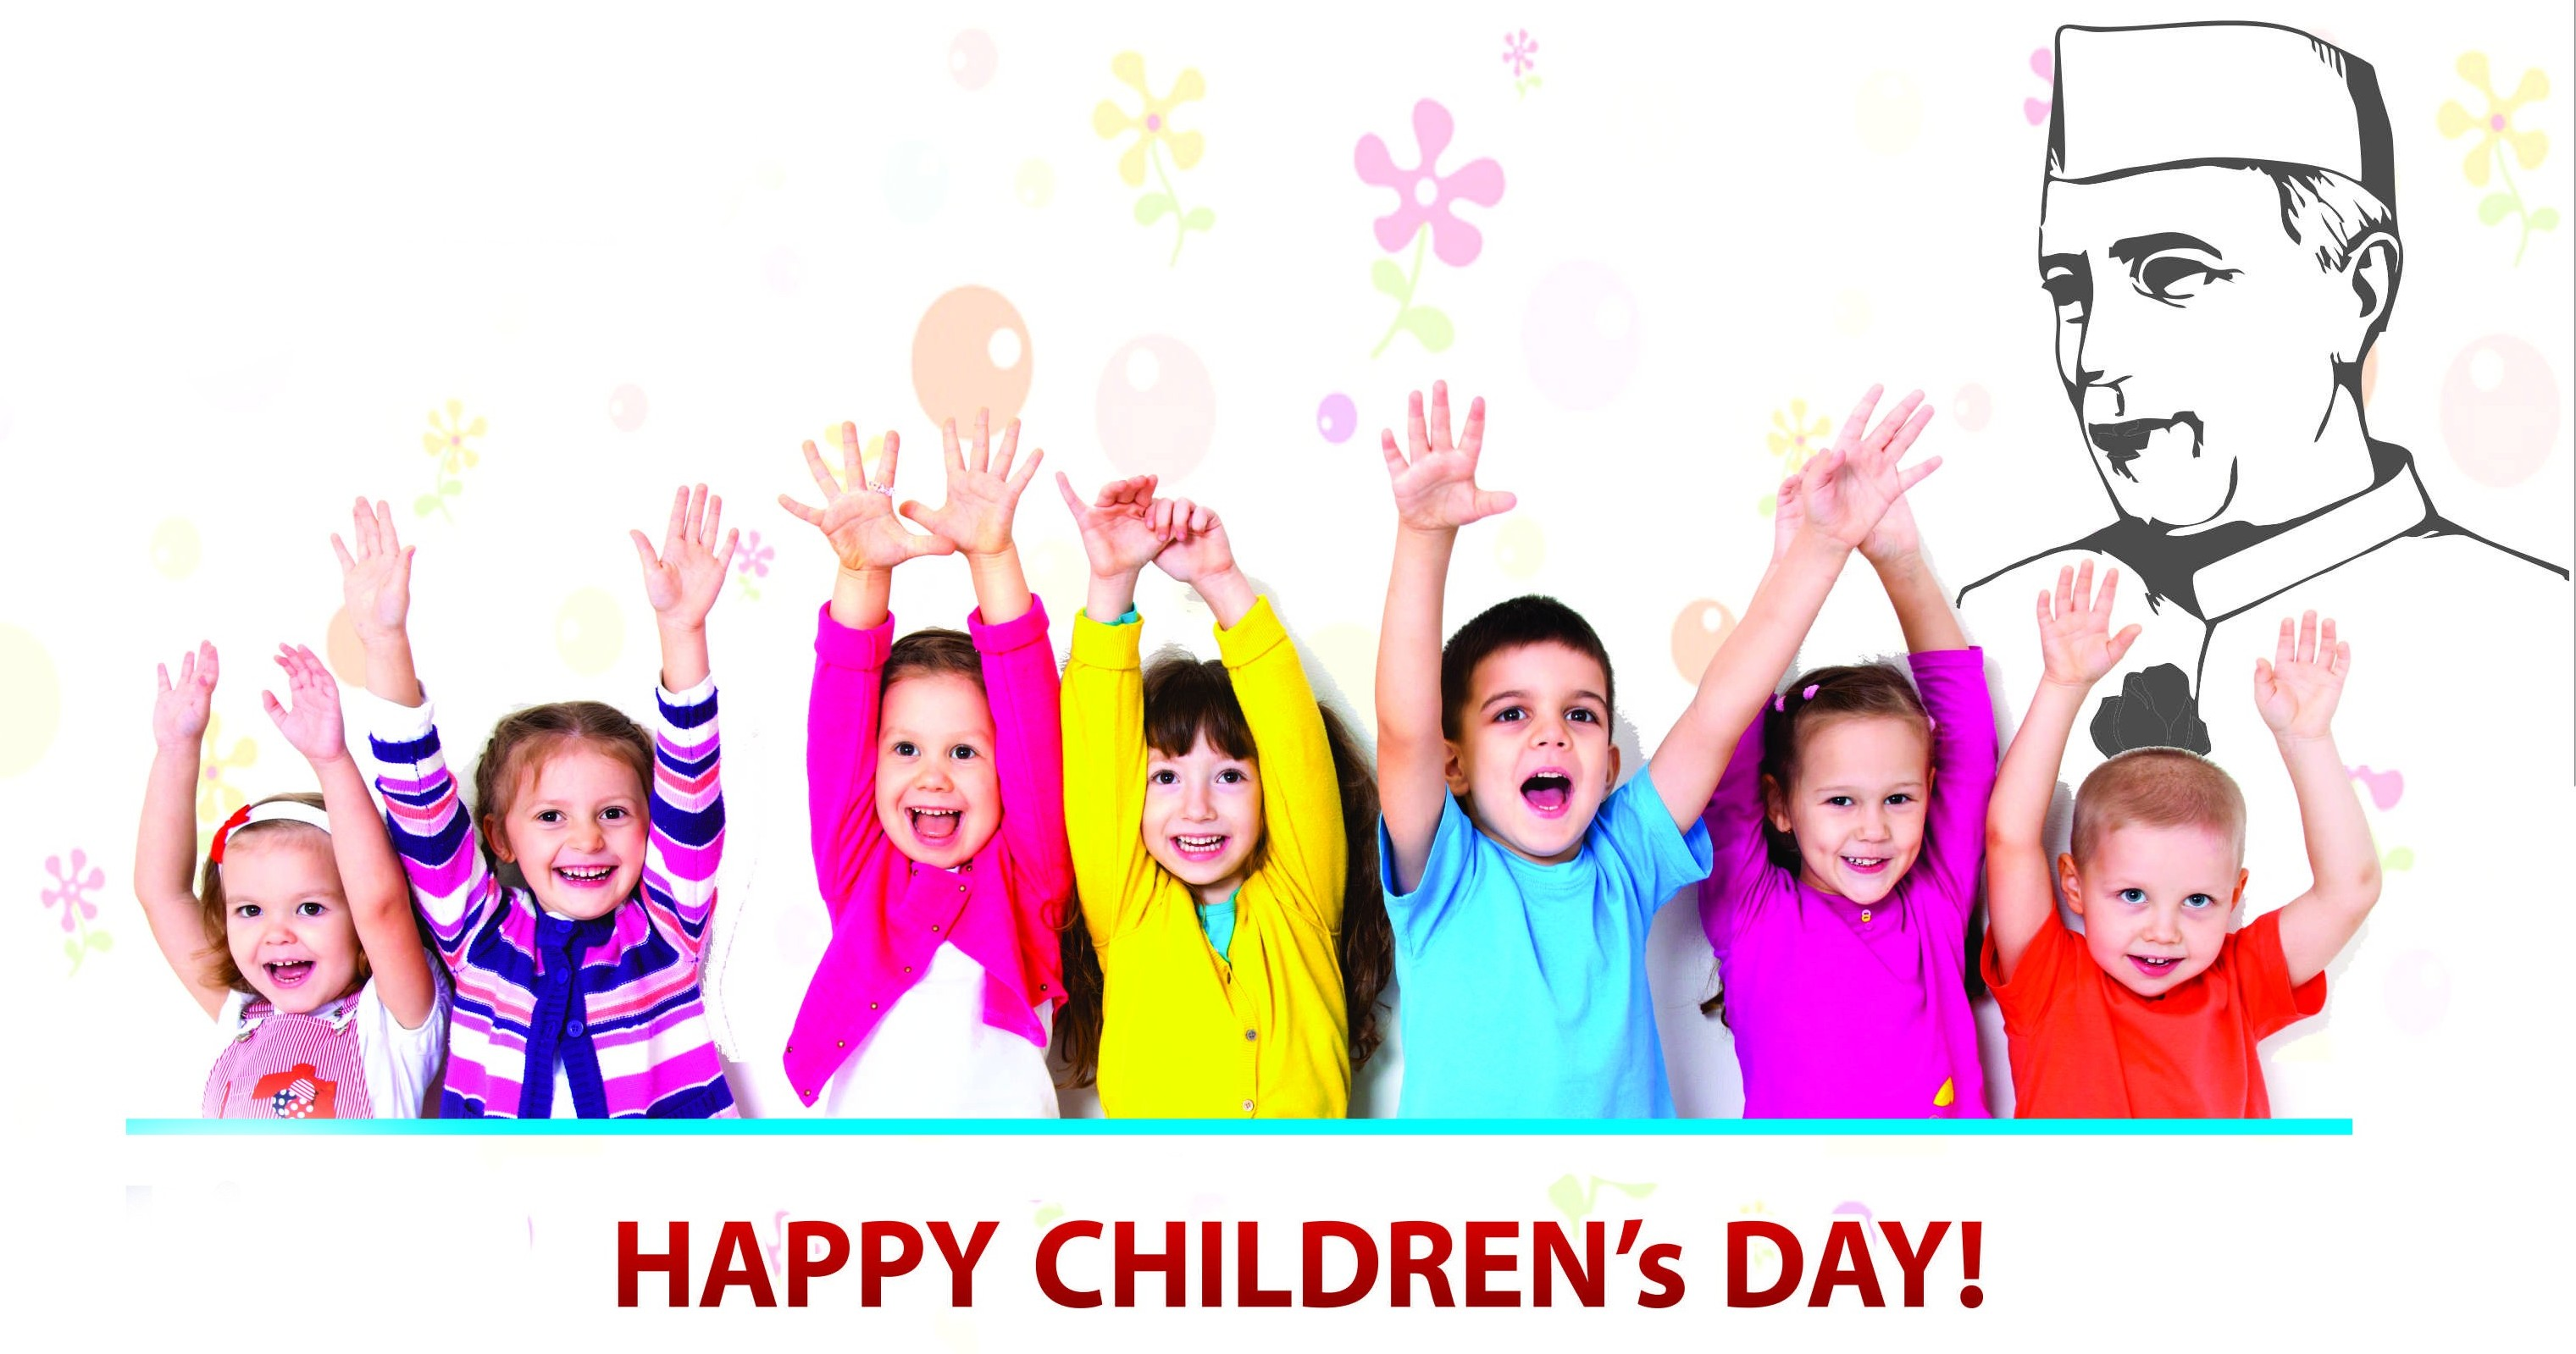 essay childrens day Respected headmaster, teachers and my dear friends, today we have assembled here to celebrate the birth anniversary of pandit jawaharlal nehru as children's day.